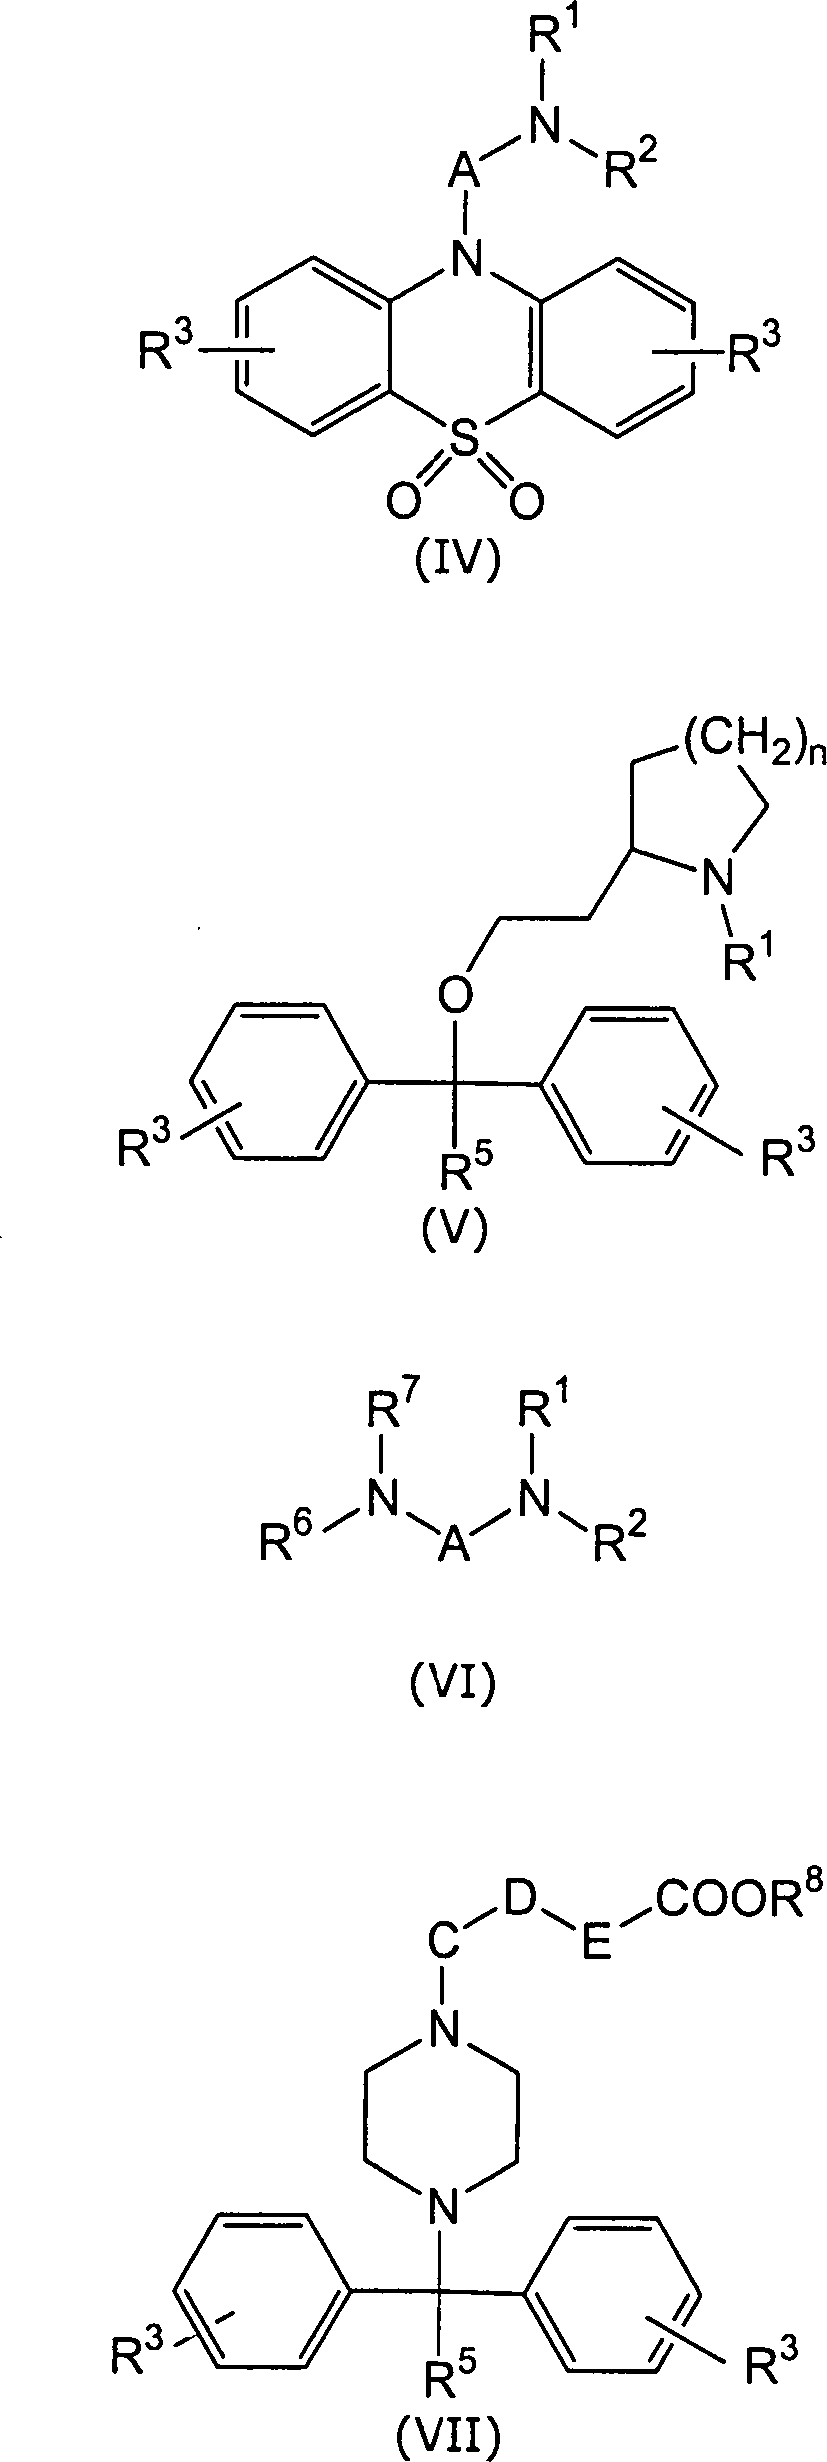 DE10339157A1 - Use of histamine antagonists against itching